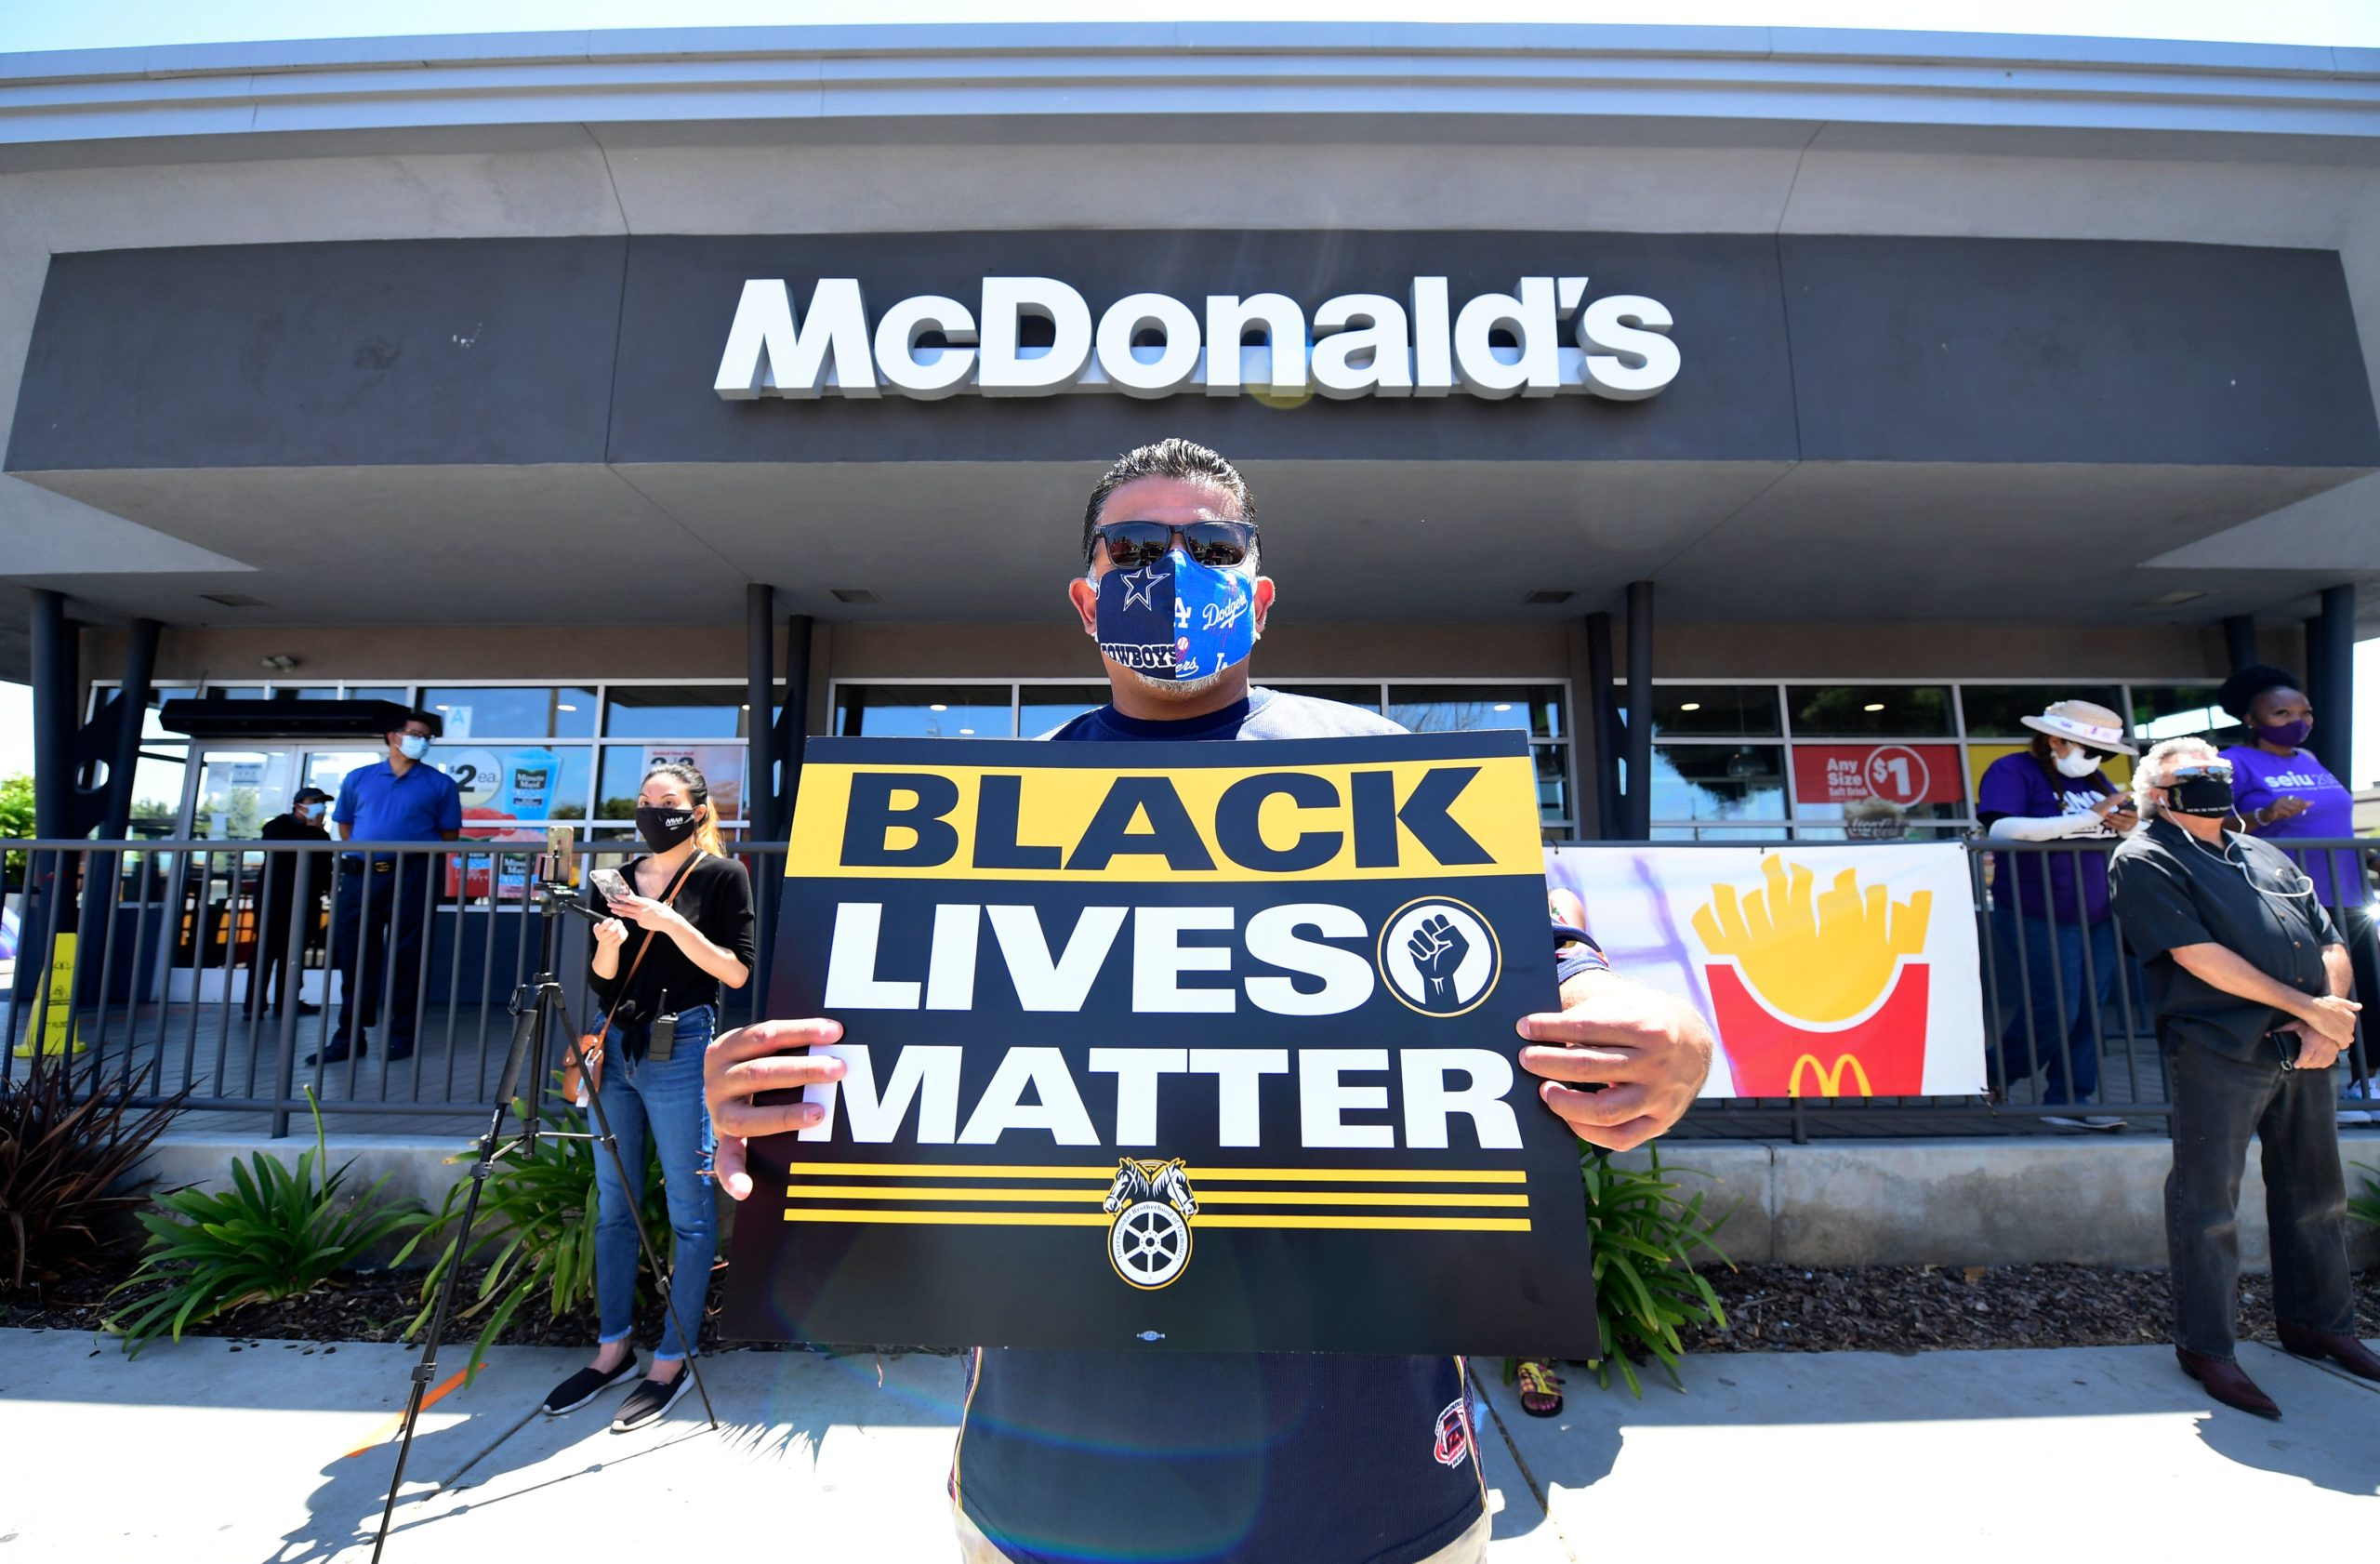 Activists protest in front of a McDonalds in Los Angeles, California, on July 20, 2020 during a Strike For Black Lives rally. (Frederic J. Brown/AFP via Getty Images)